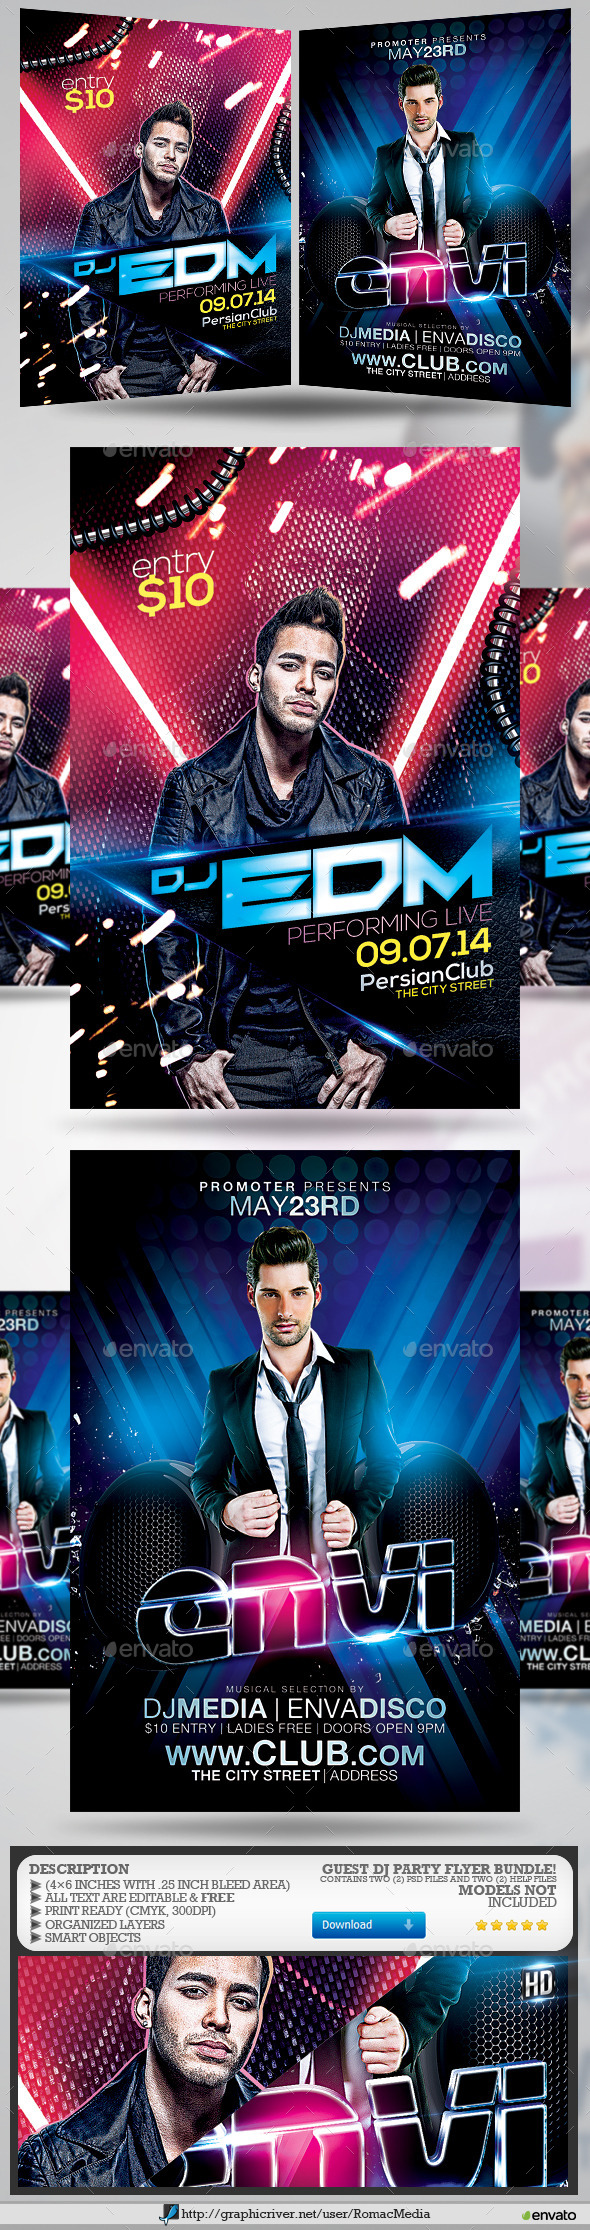 Guest DJ Party Flyer Bundle 4 - Clubs & Parties Events